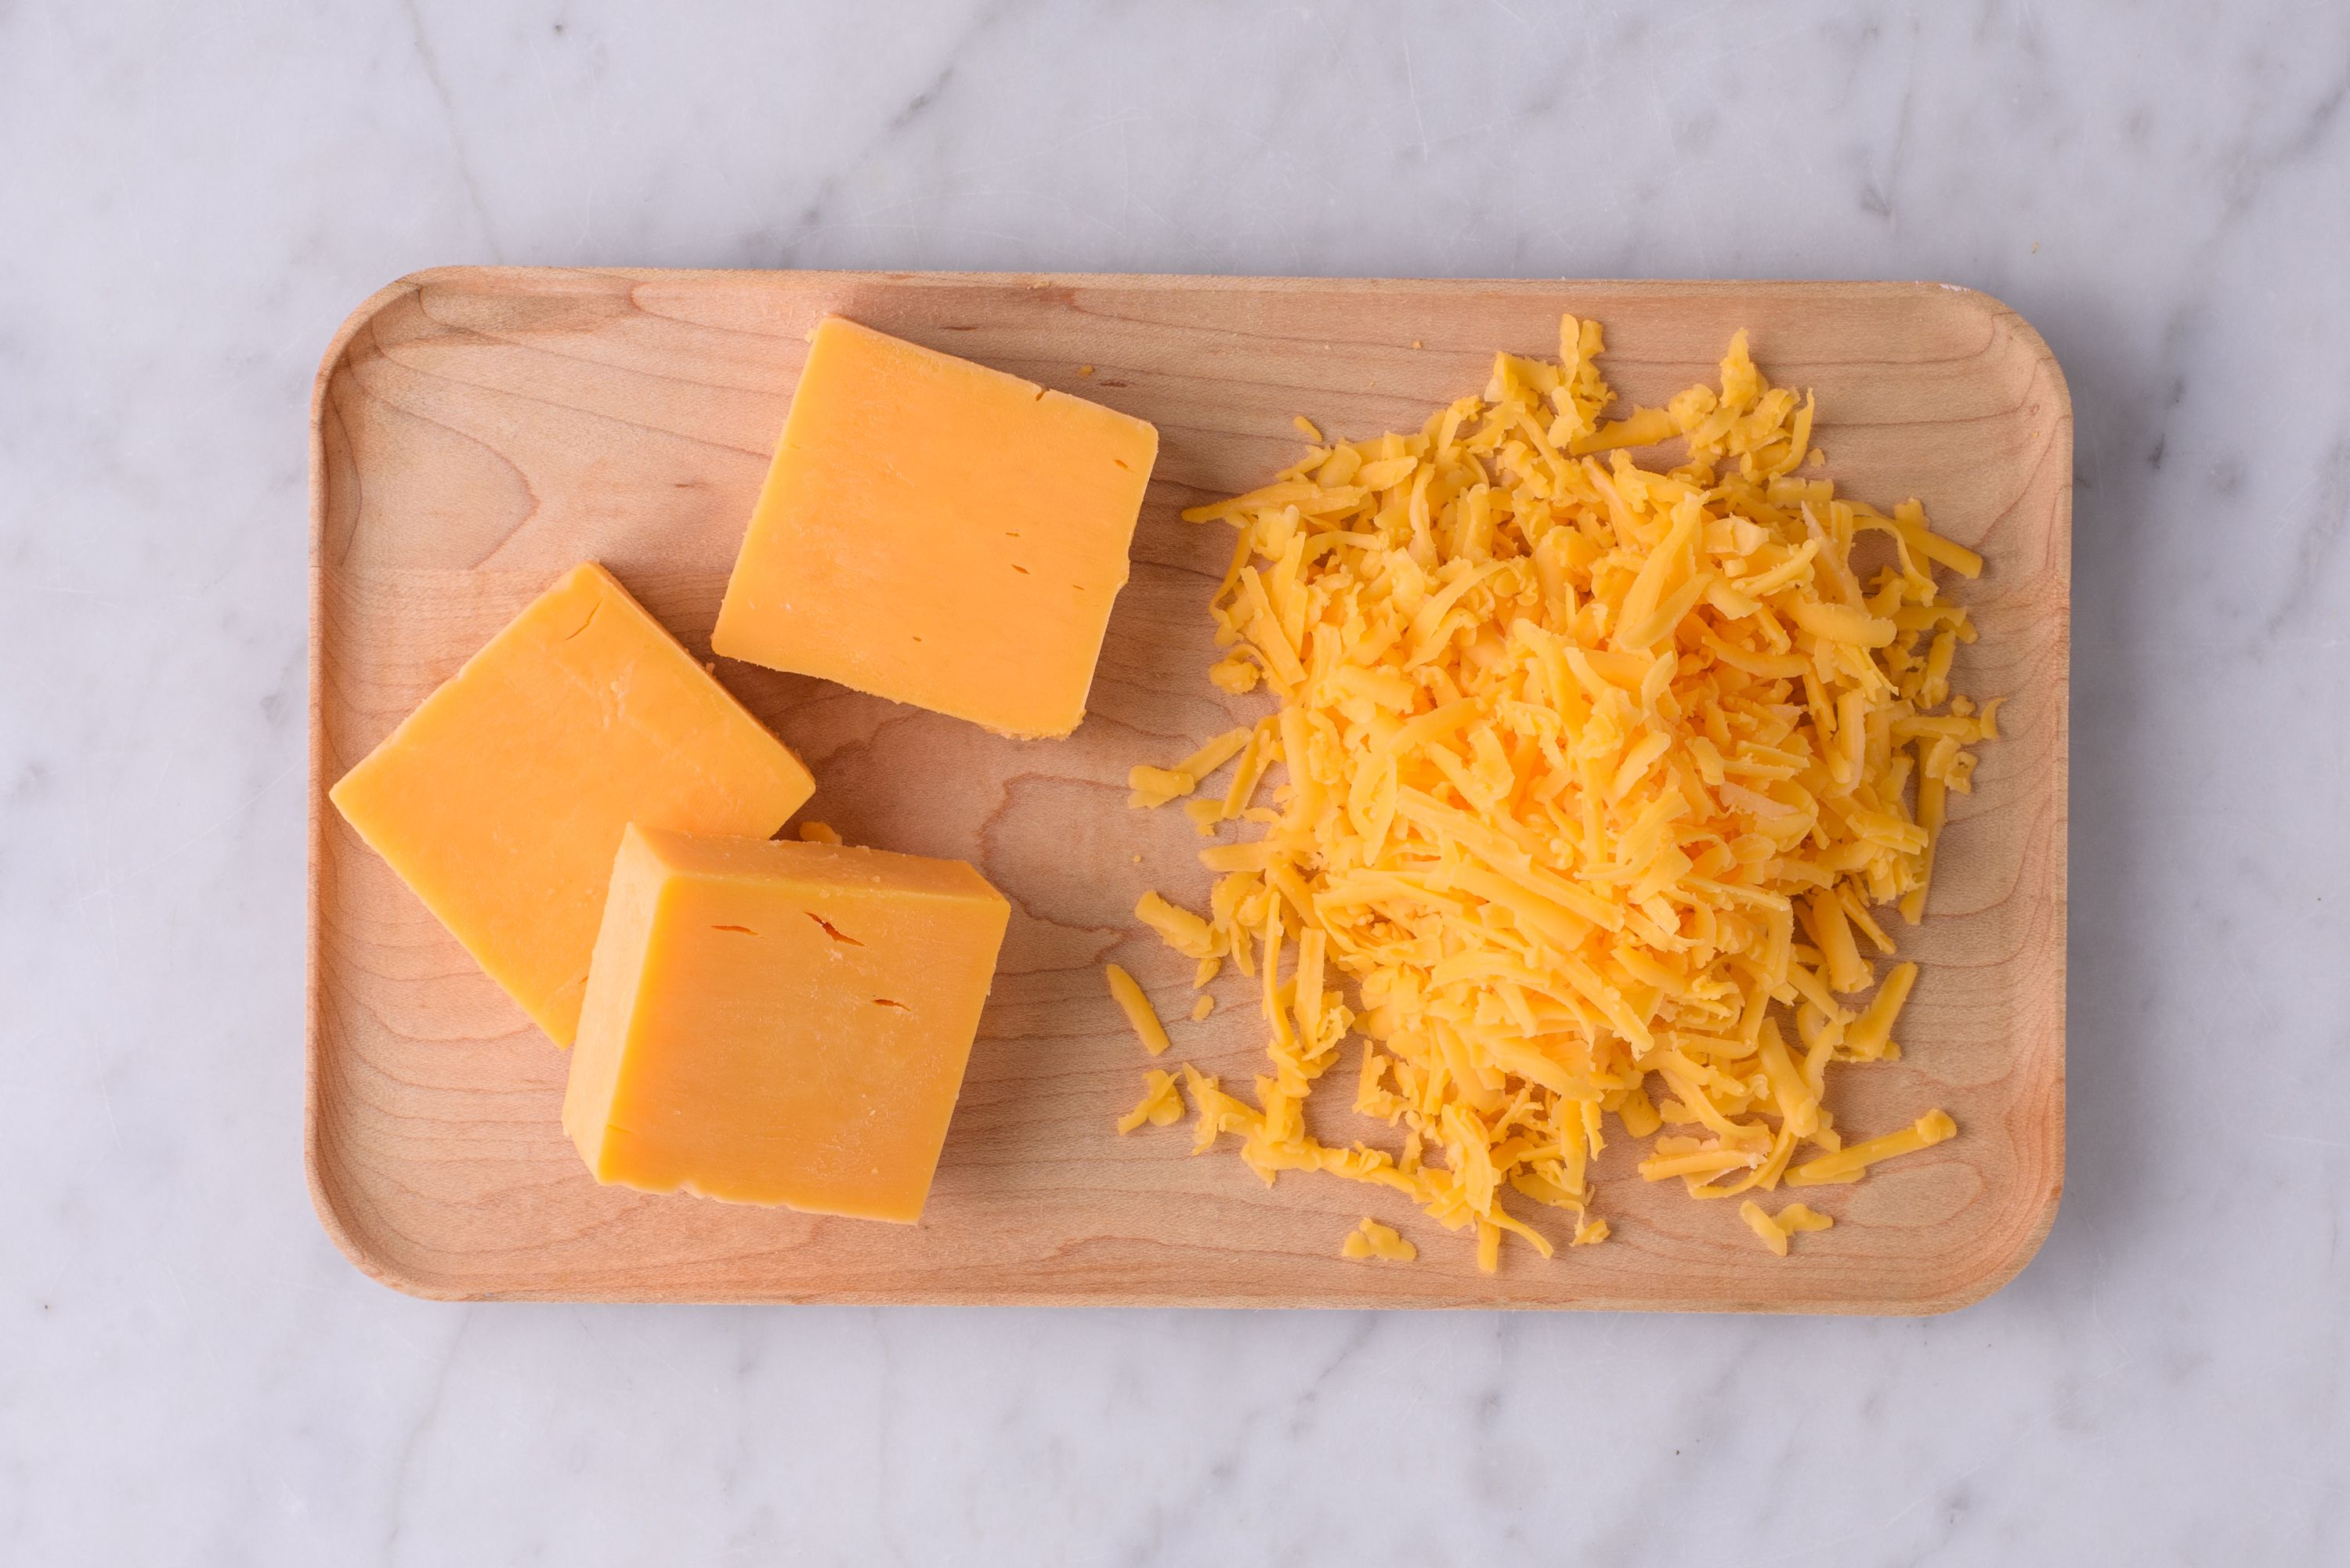 cheddar cheese on a heart healthy diet